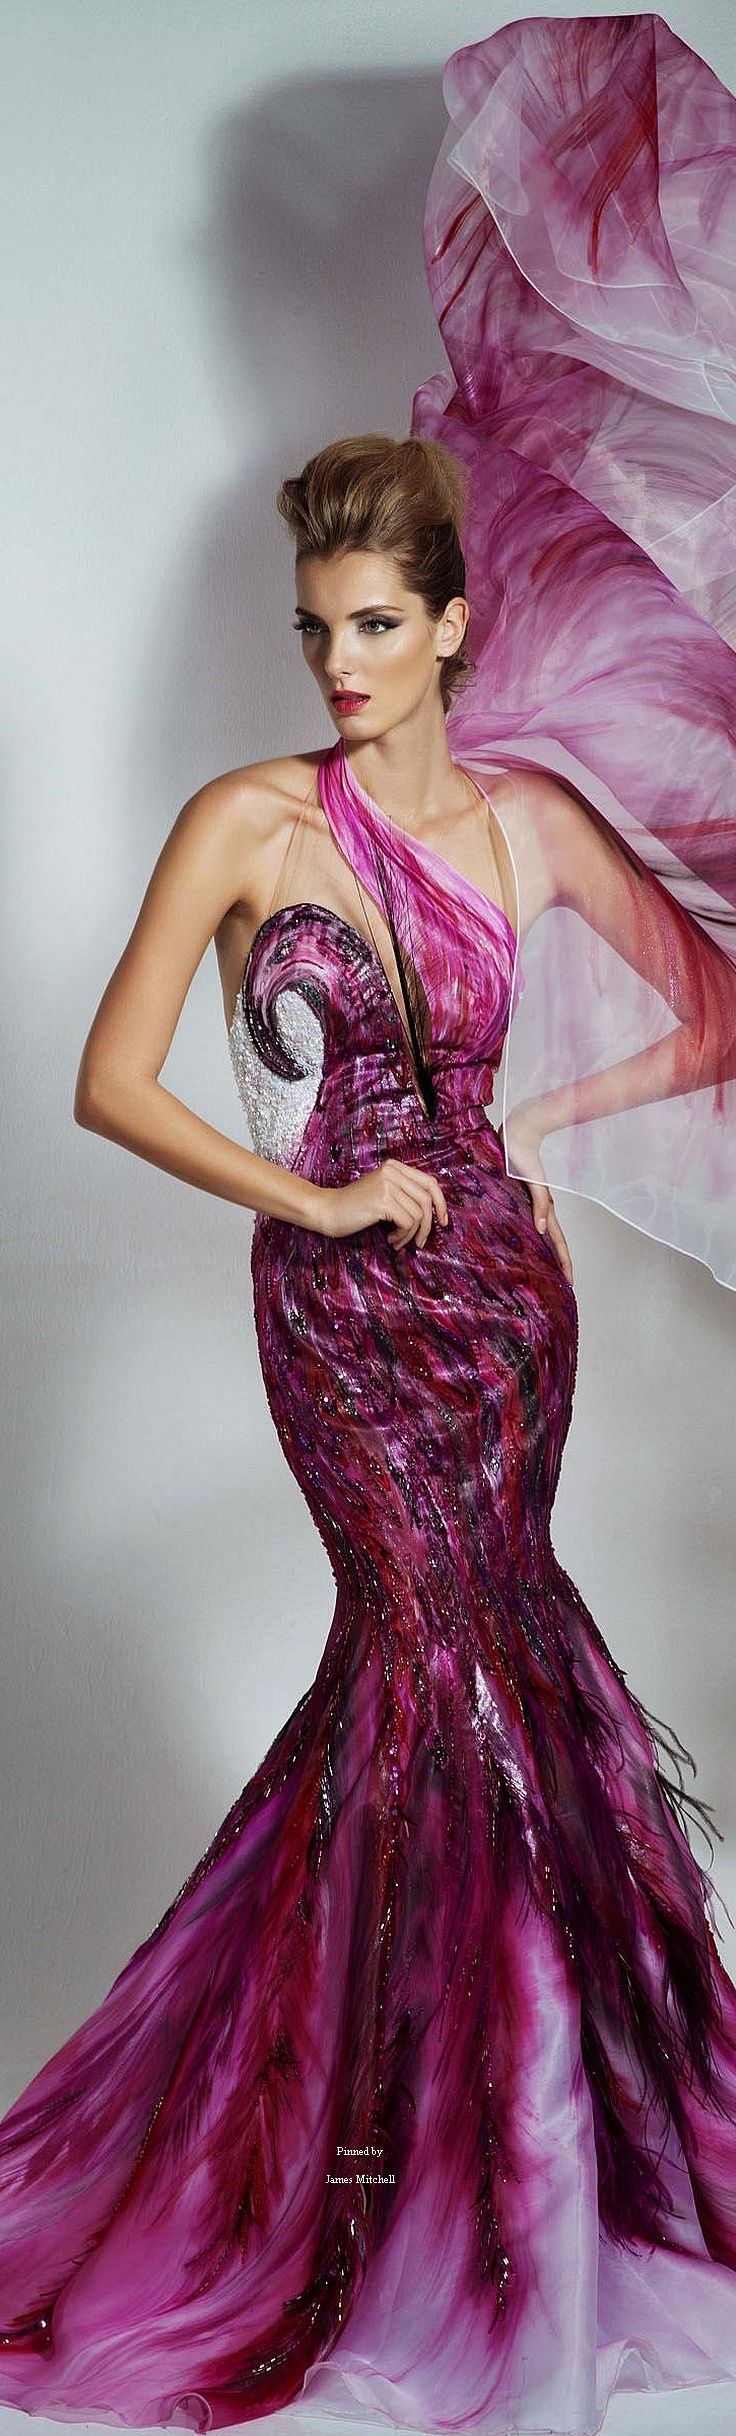 best images about dresses a chick can dream on Pinterest